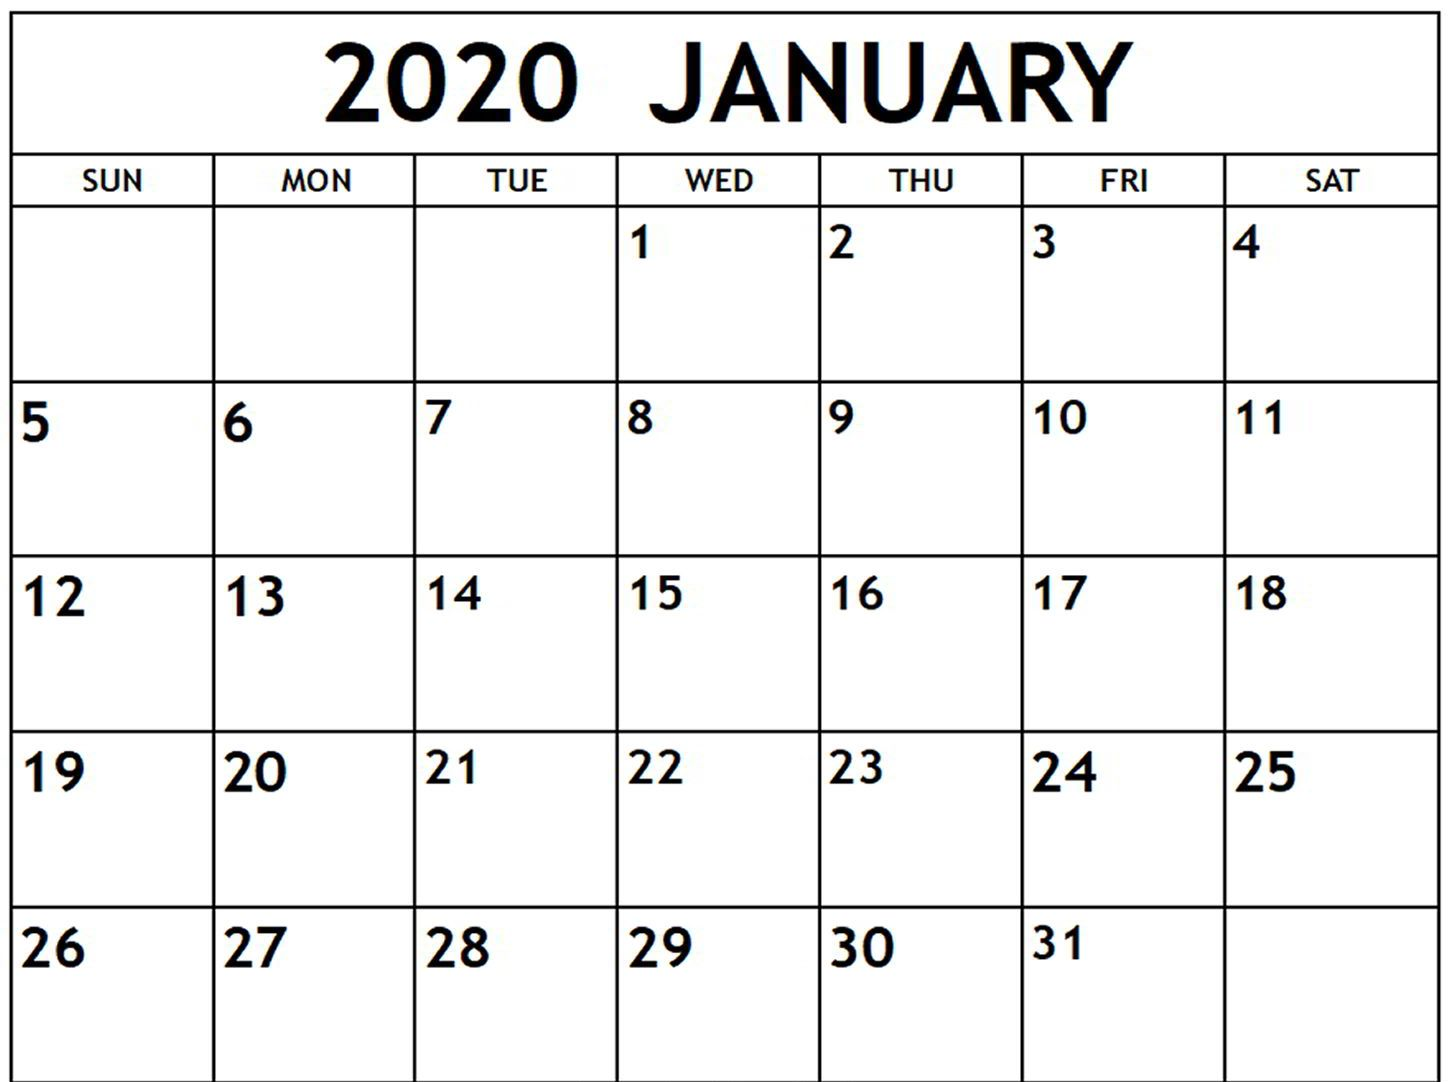 image regarding Calendar 2020 Printable called Totally free January Calendar 2020 Printable Template Blank Inside PDF